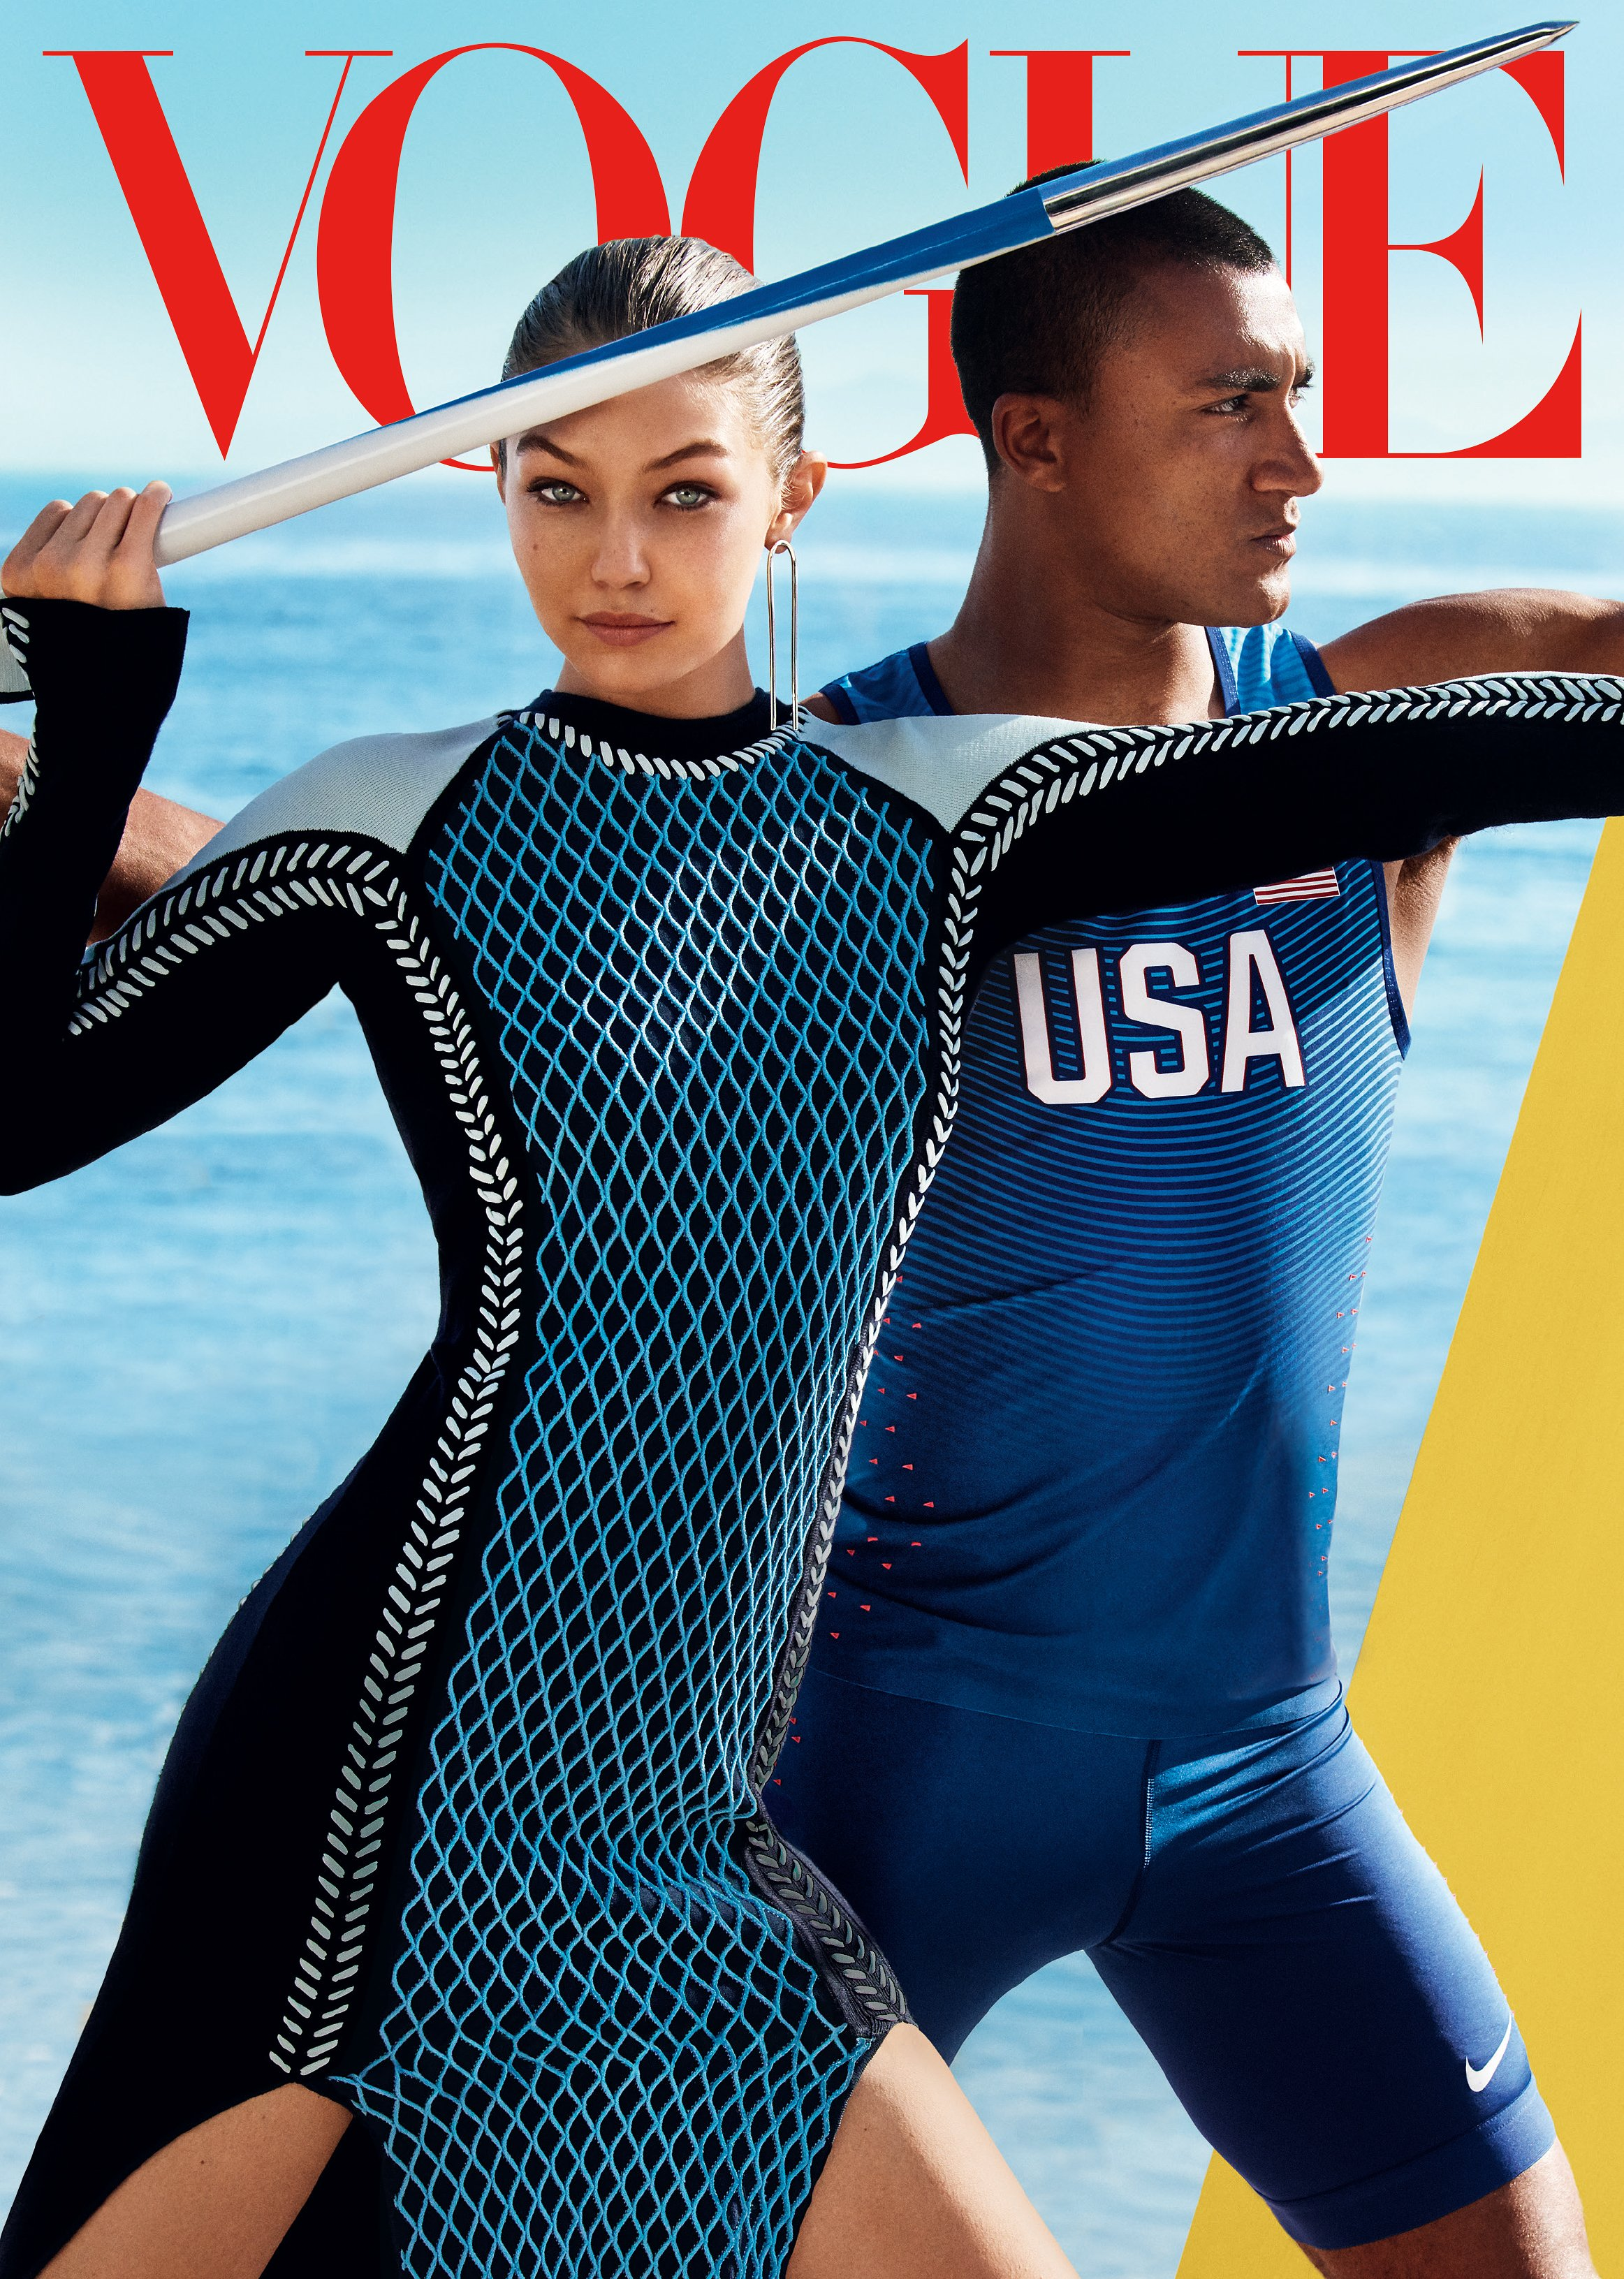 gigi-hadid-ashton-eaton-august-2016-vogue-cover